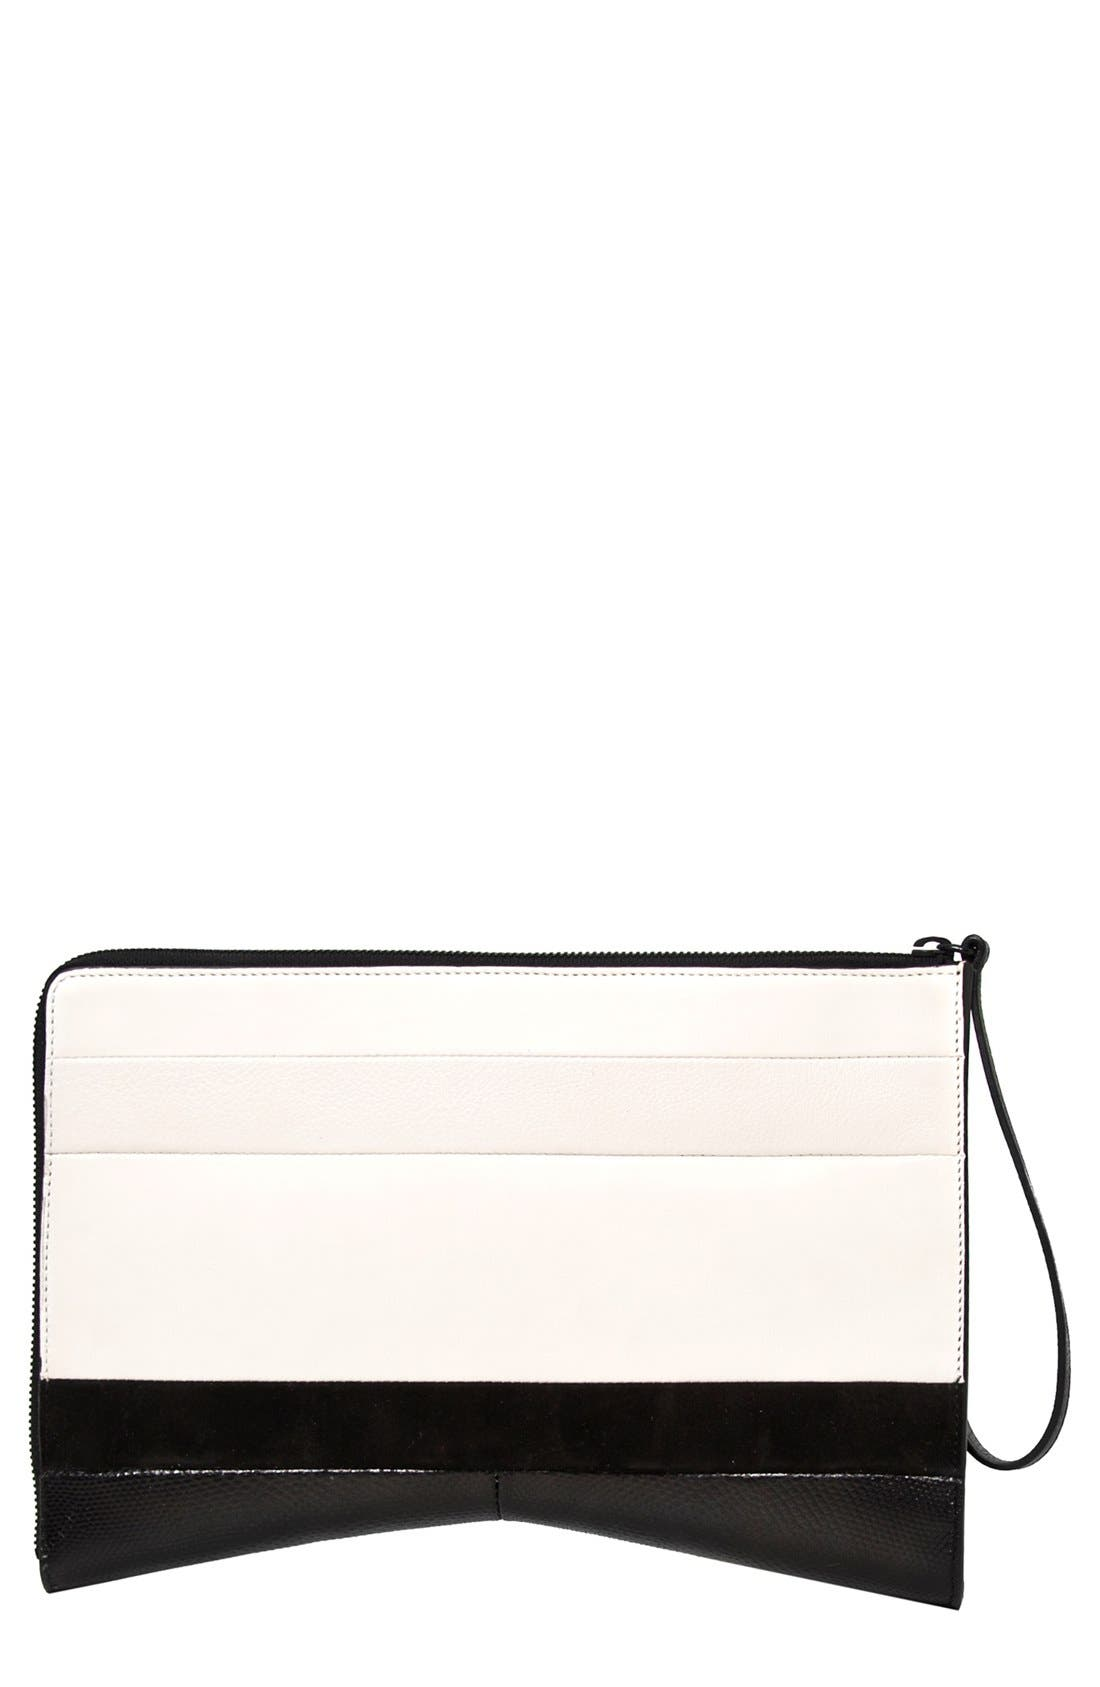 Alternate Image 1 Selected - Narciso Rodriguez Leather & Suede Clutch